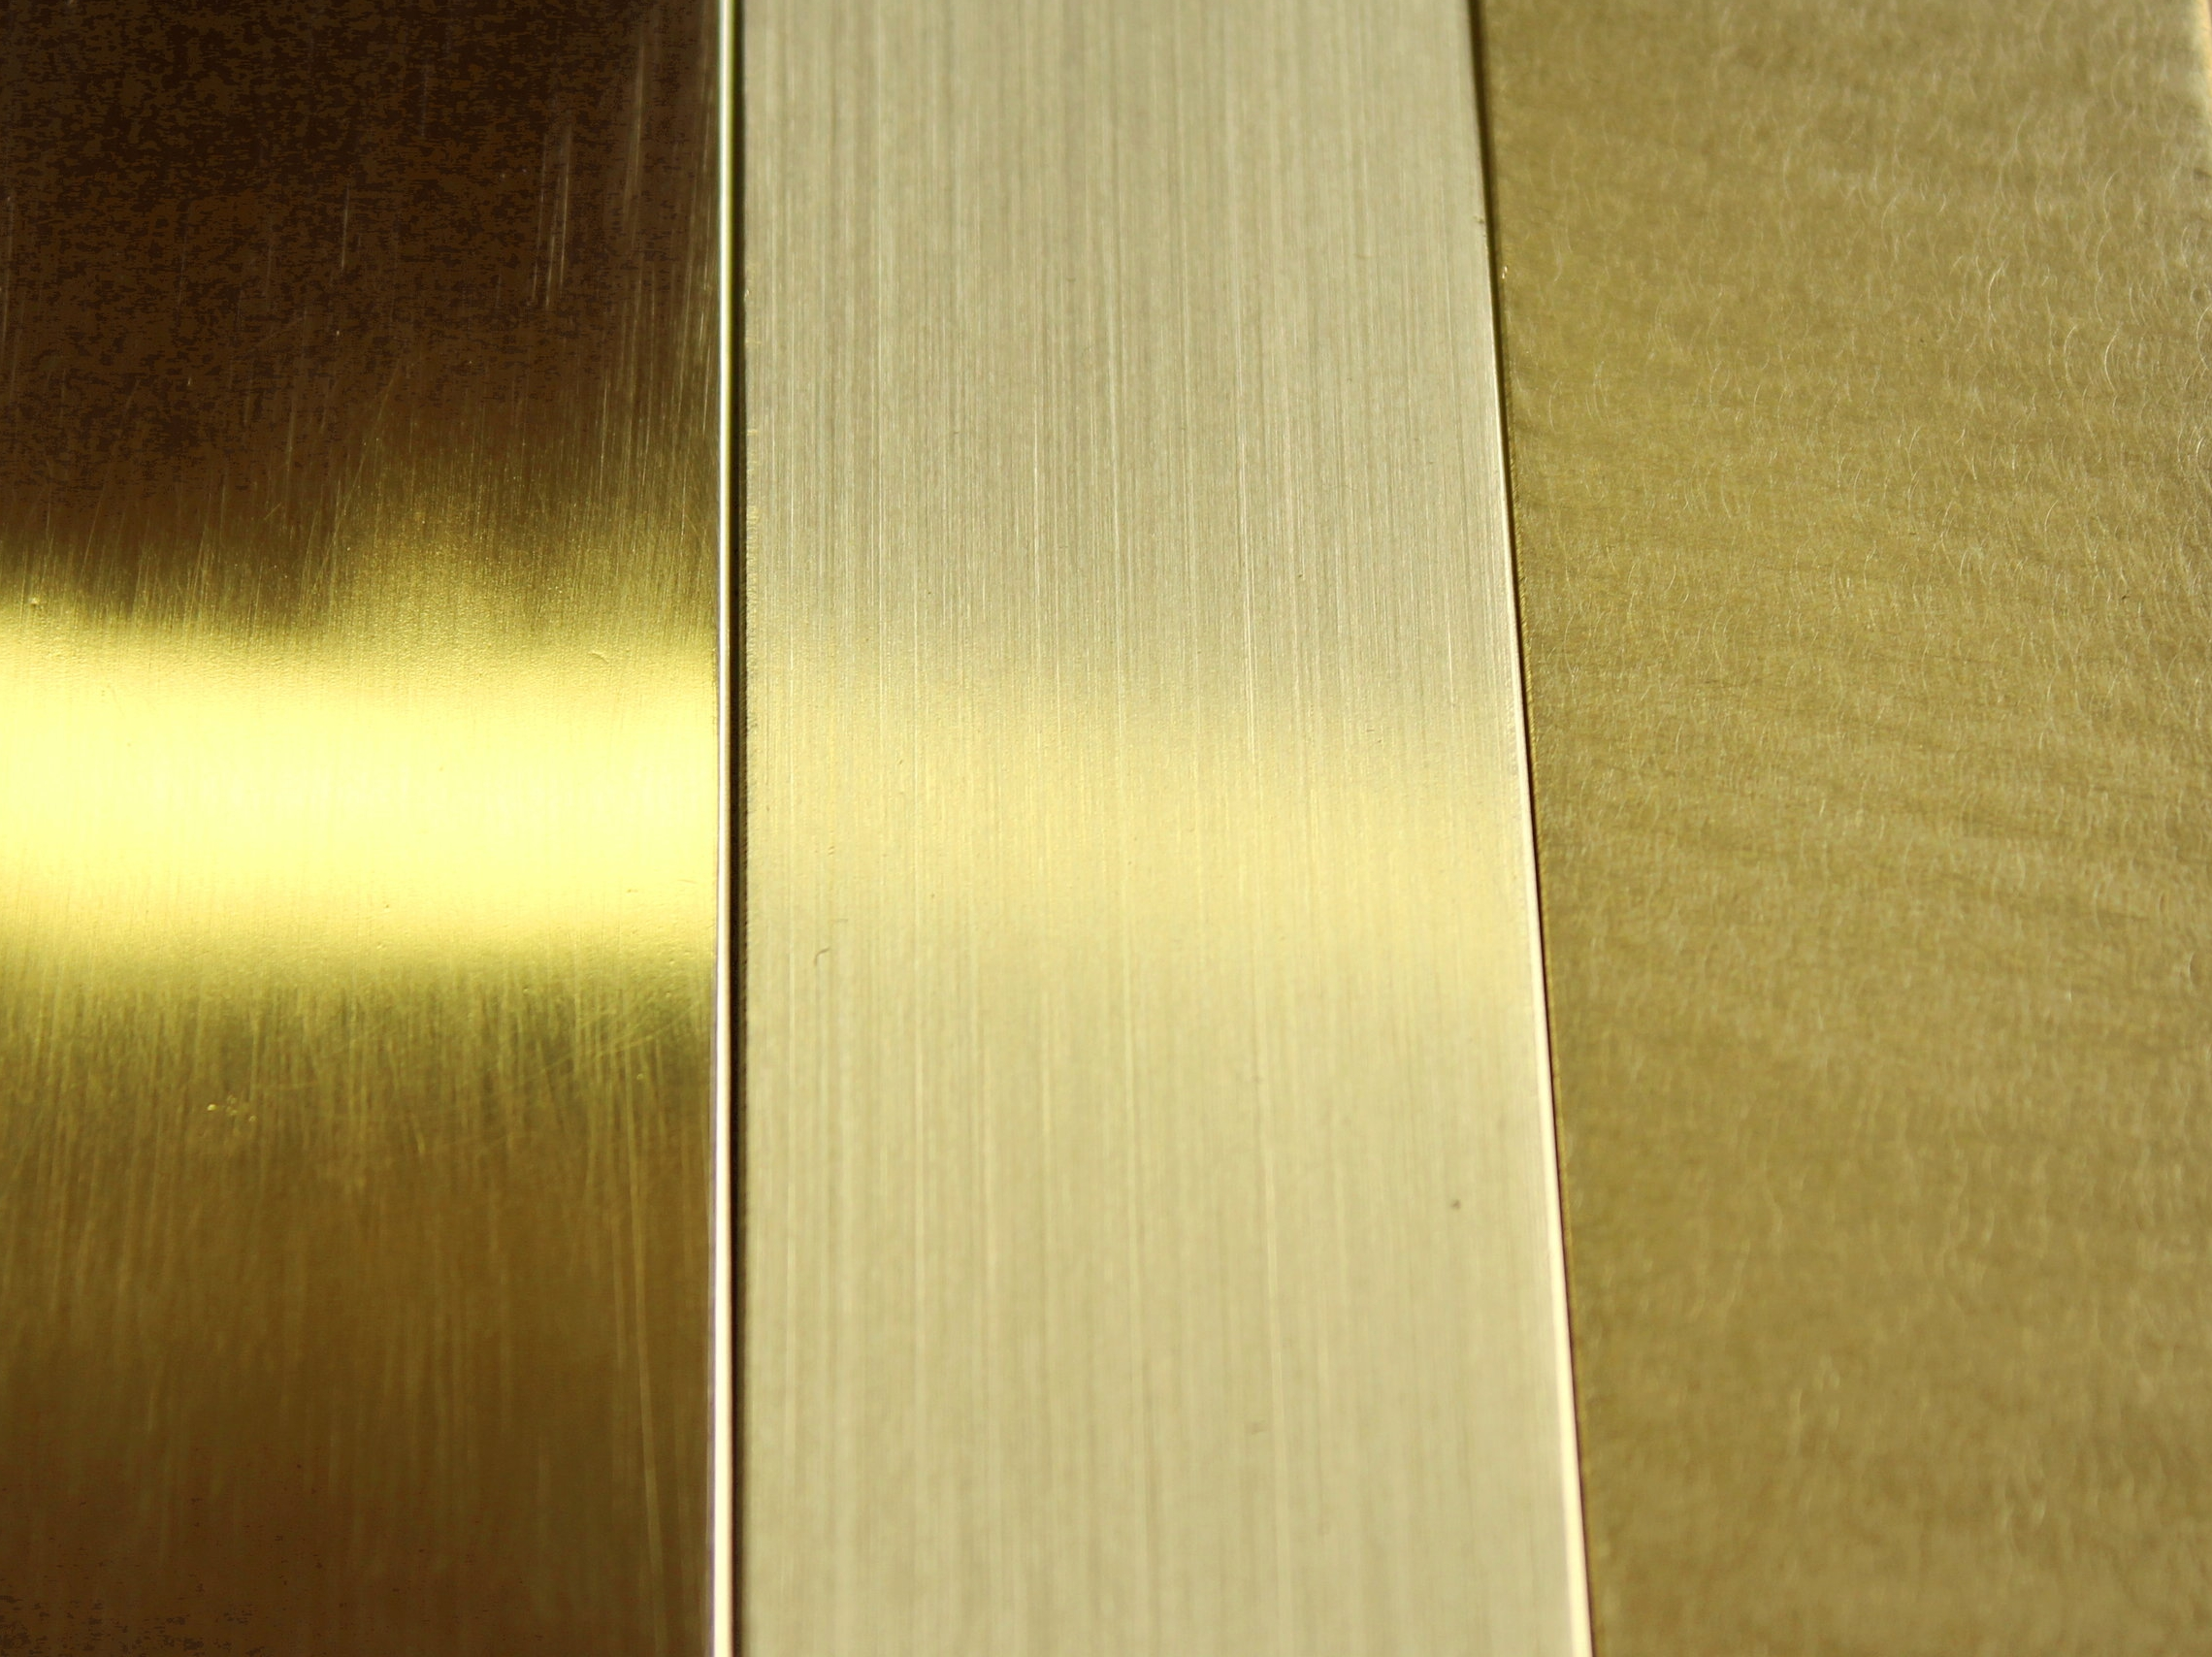 This is the same material with 3 different natural finishes.